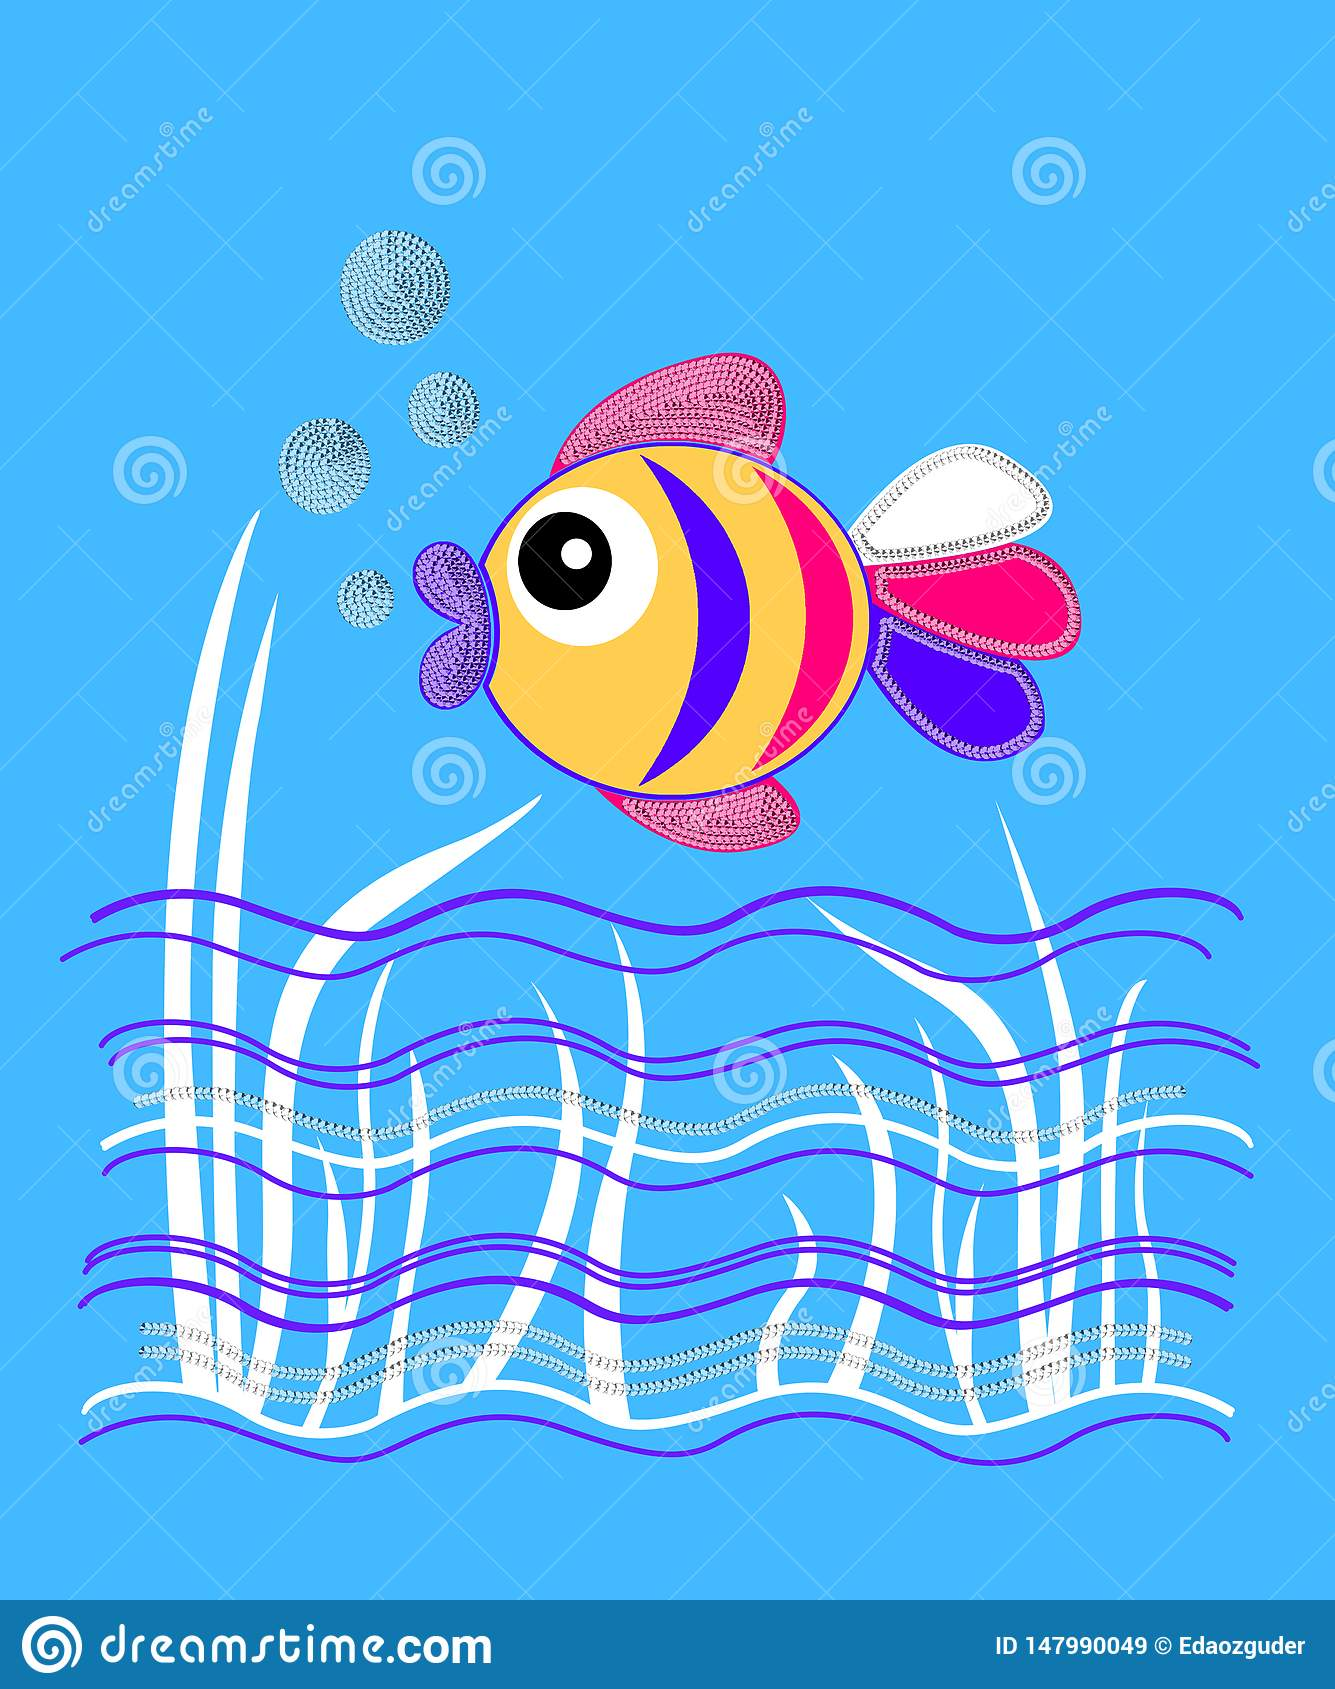 underwater fish, graphics for children products